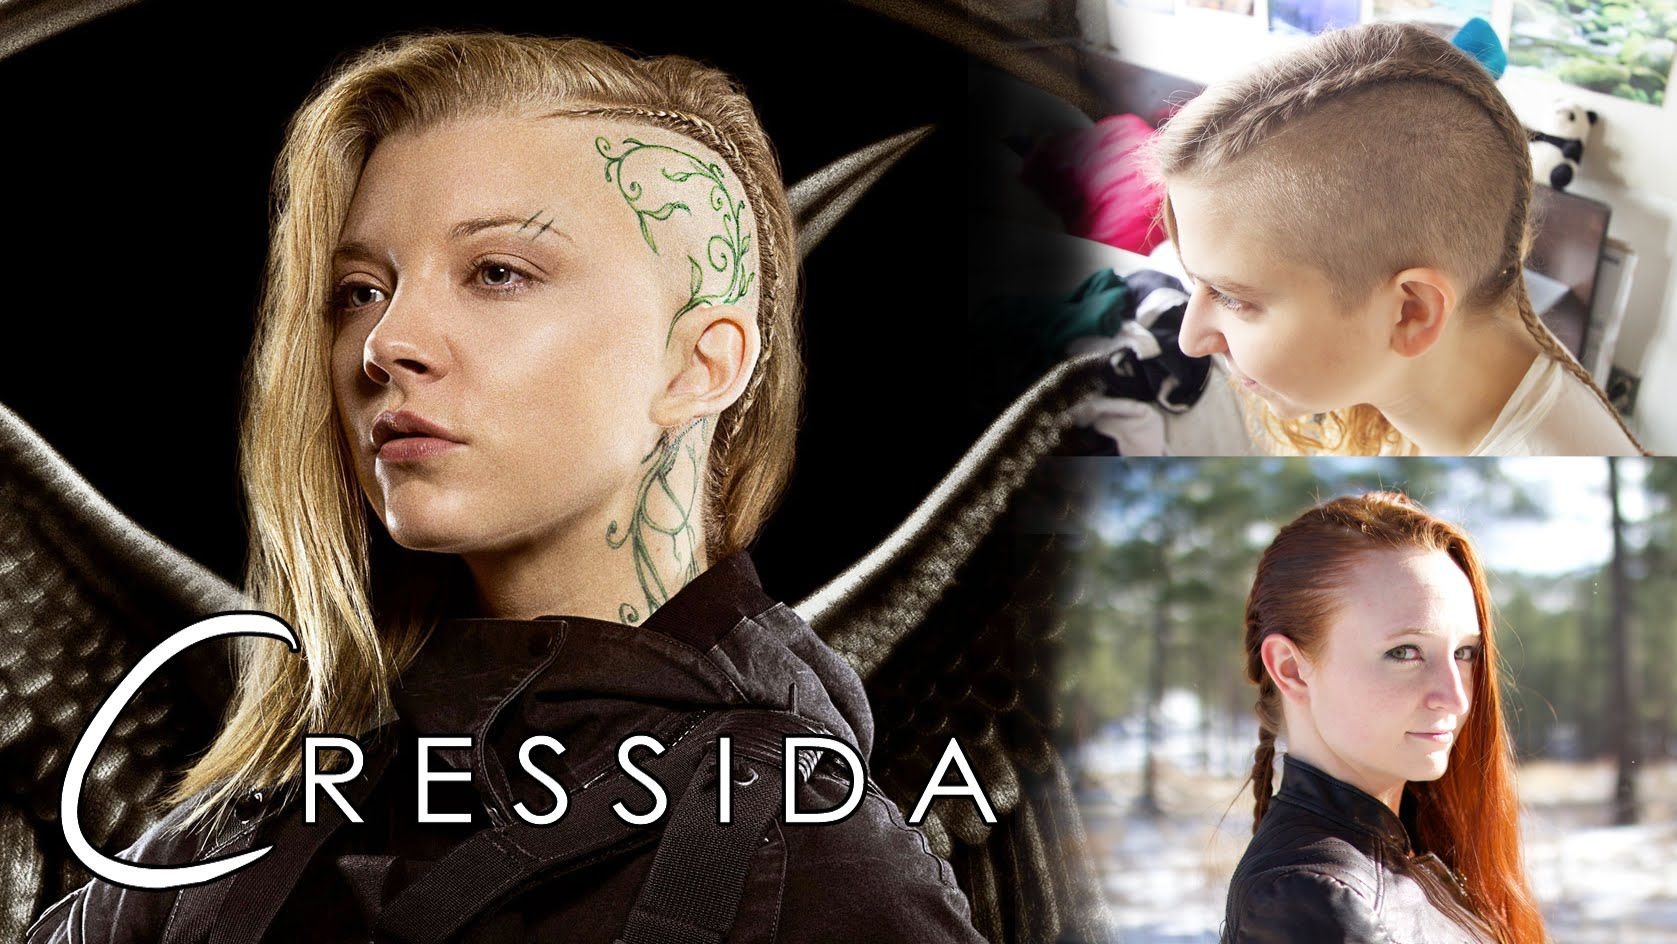 Hunger Games Hair Tutorial , Cressida (for both shaved and